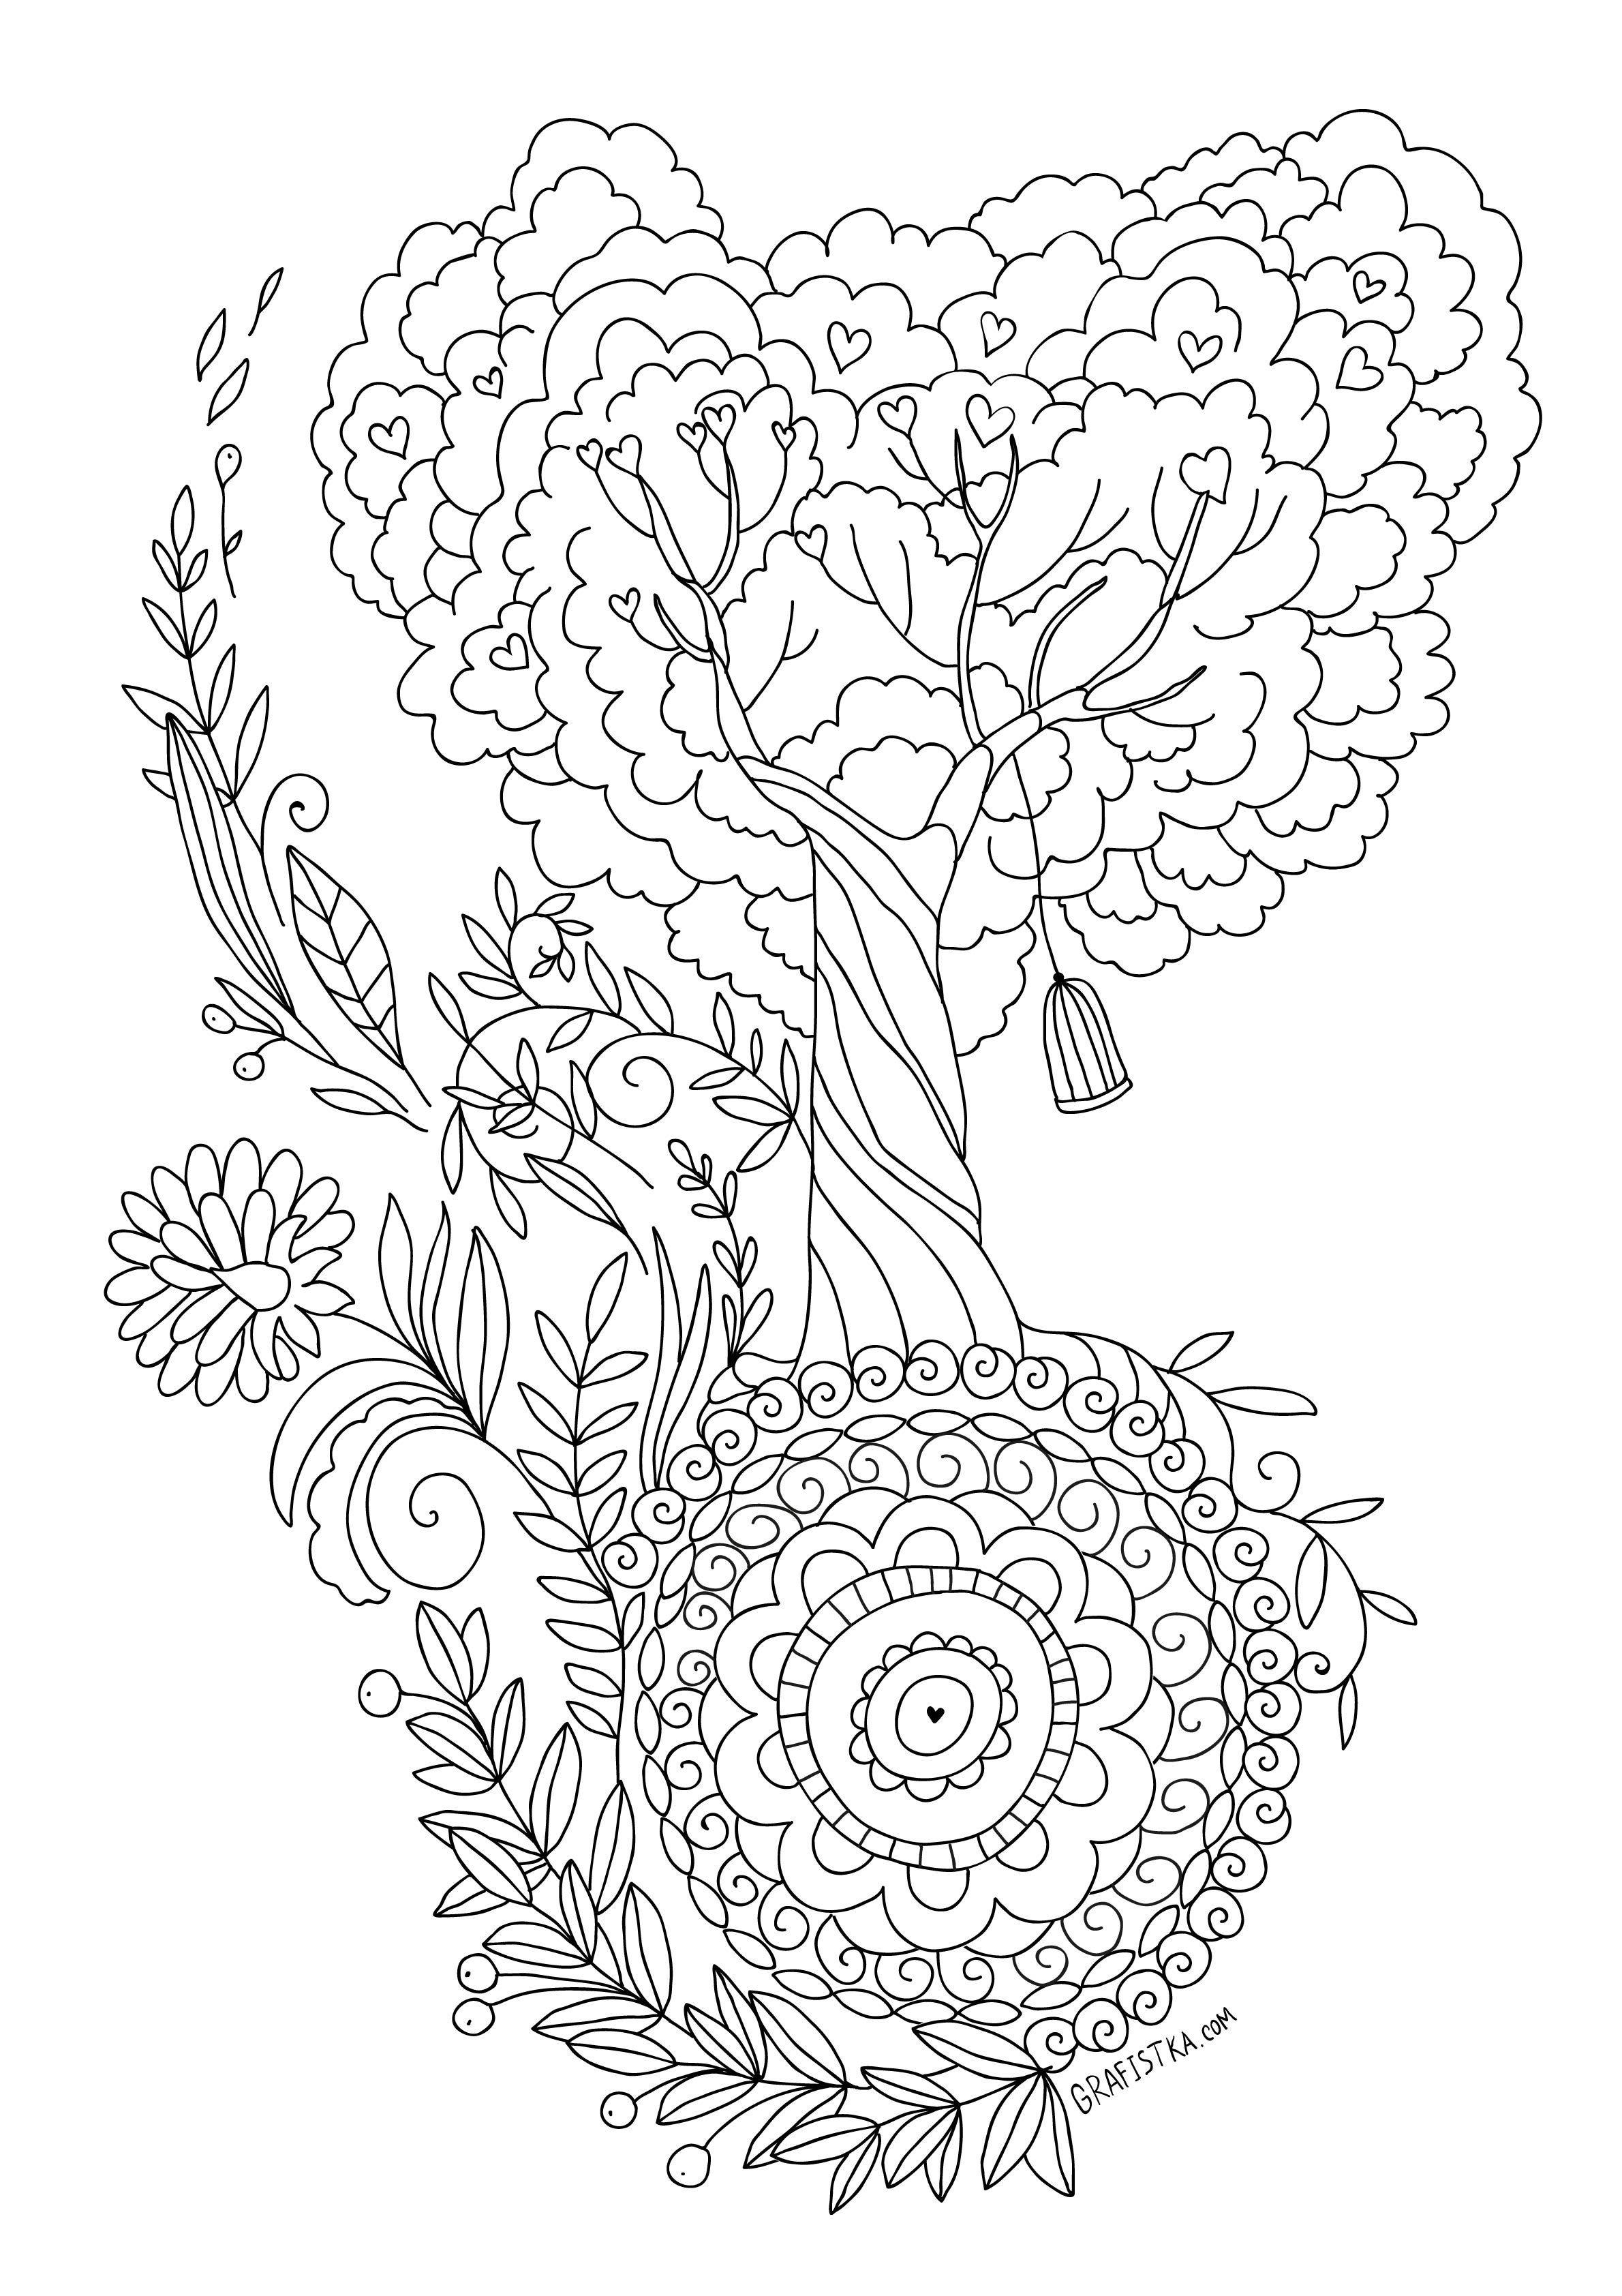 Tree colouring page for adults   adult coloring pages   Pinterest ...